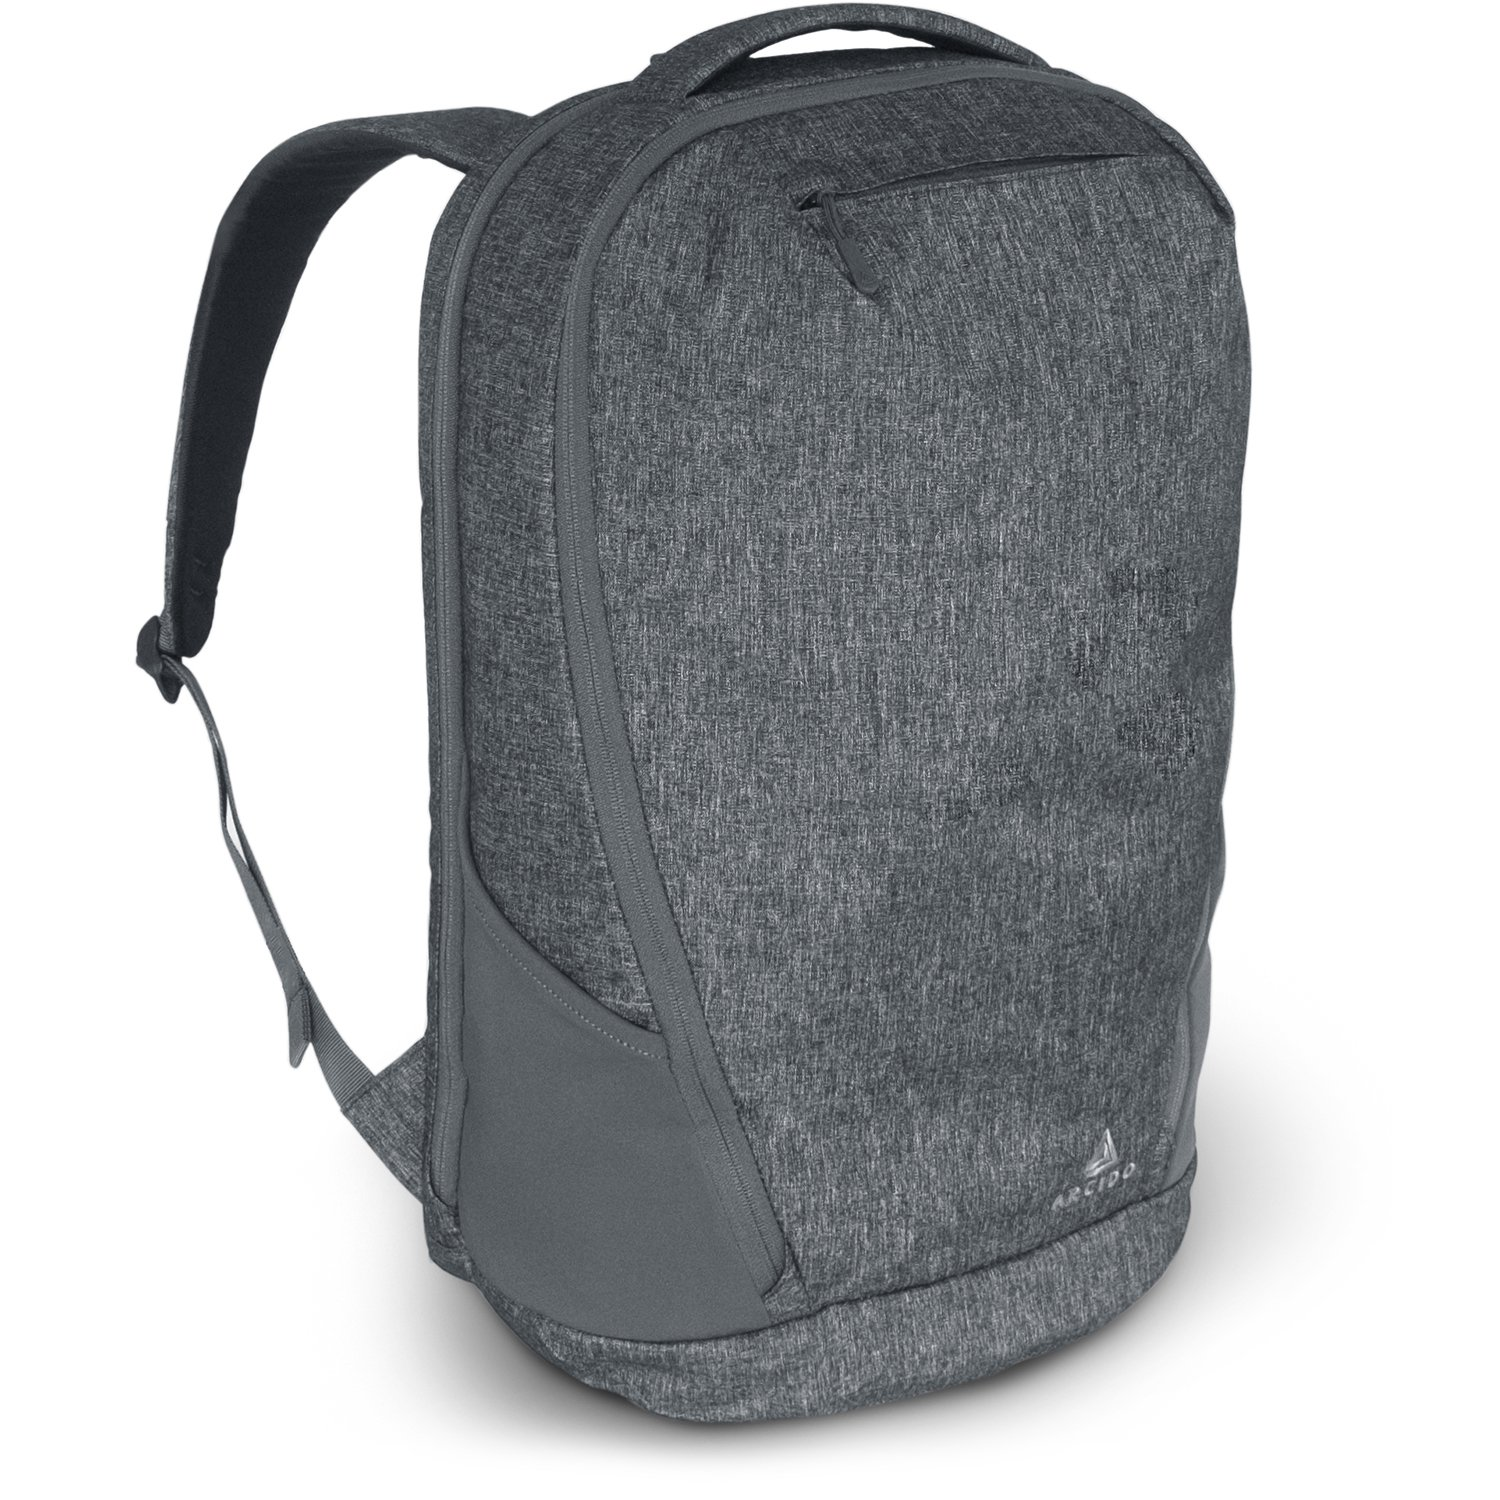 Arcido Faroe Backpack : 22'' x 9'' x 14'' Carry On Luggage / American Airlines Luggage Air Travel Backpack with Adaptable Laptop Compartment up to 15.4'' by Arcido